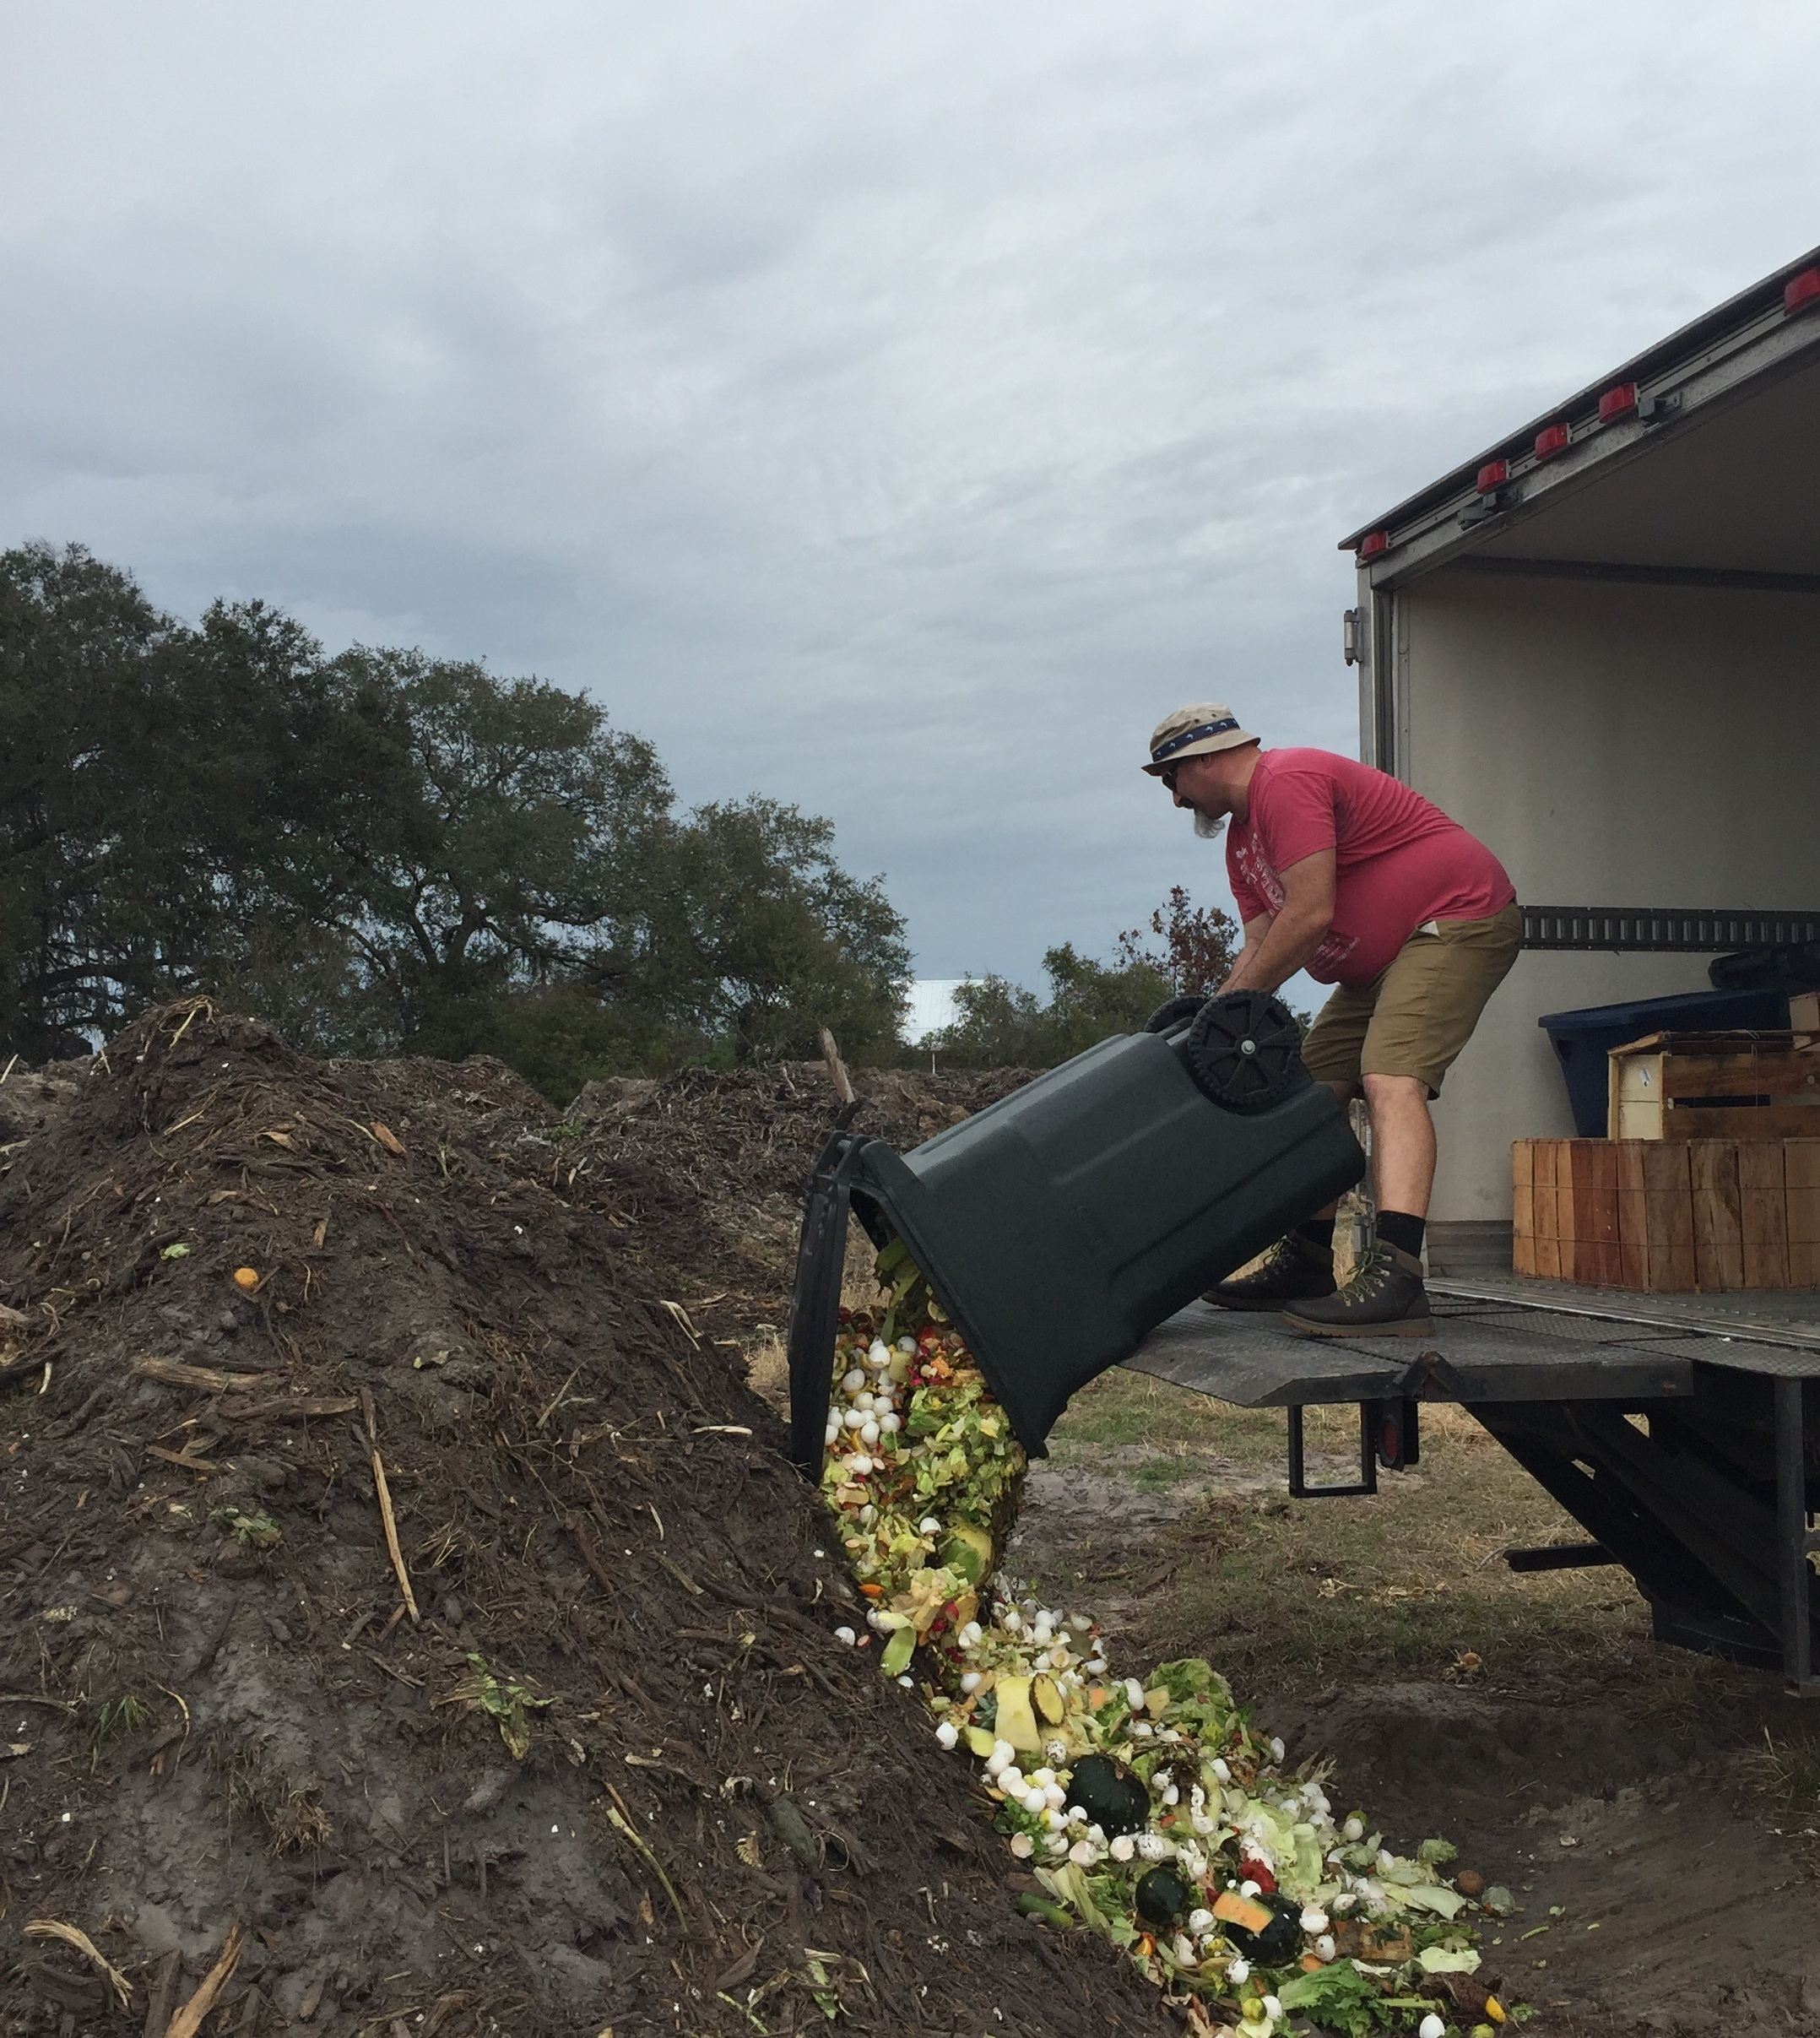 A Gamble Creek Farm team member composting leftover food from the restaurant to enrich the soil at the farm.